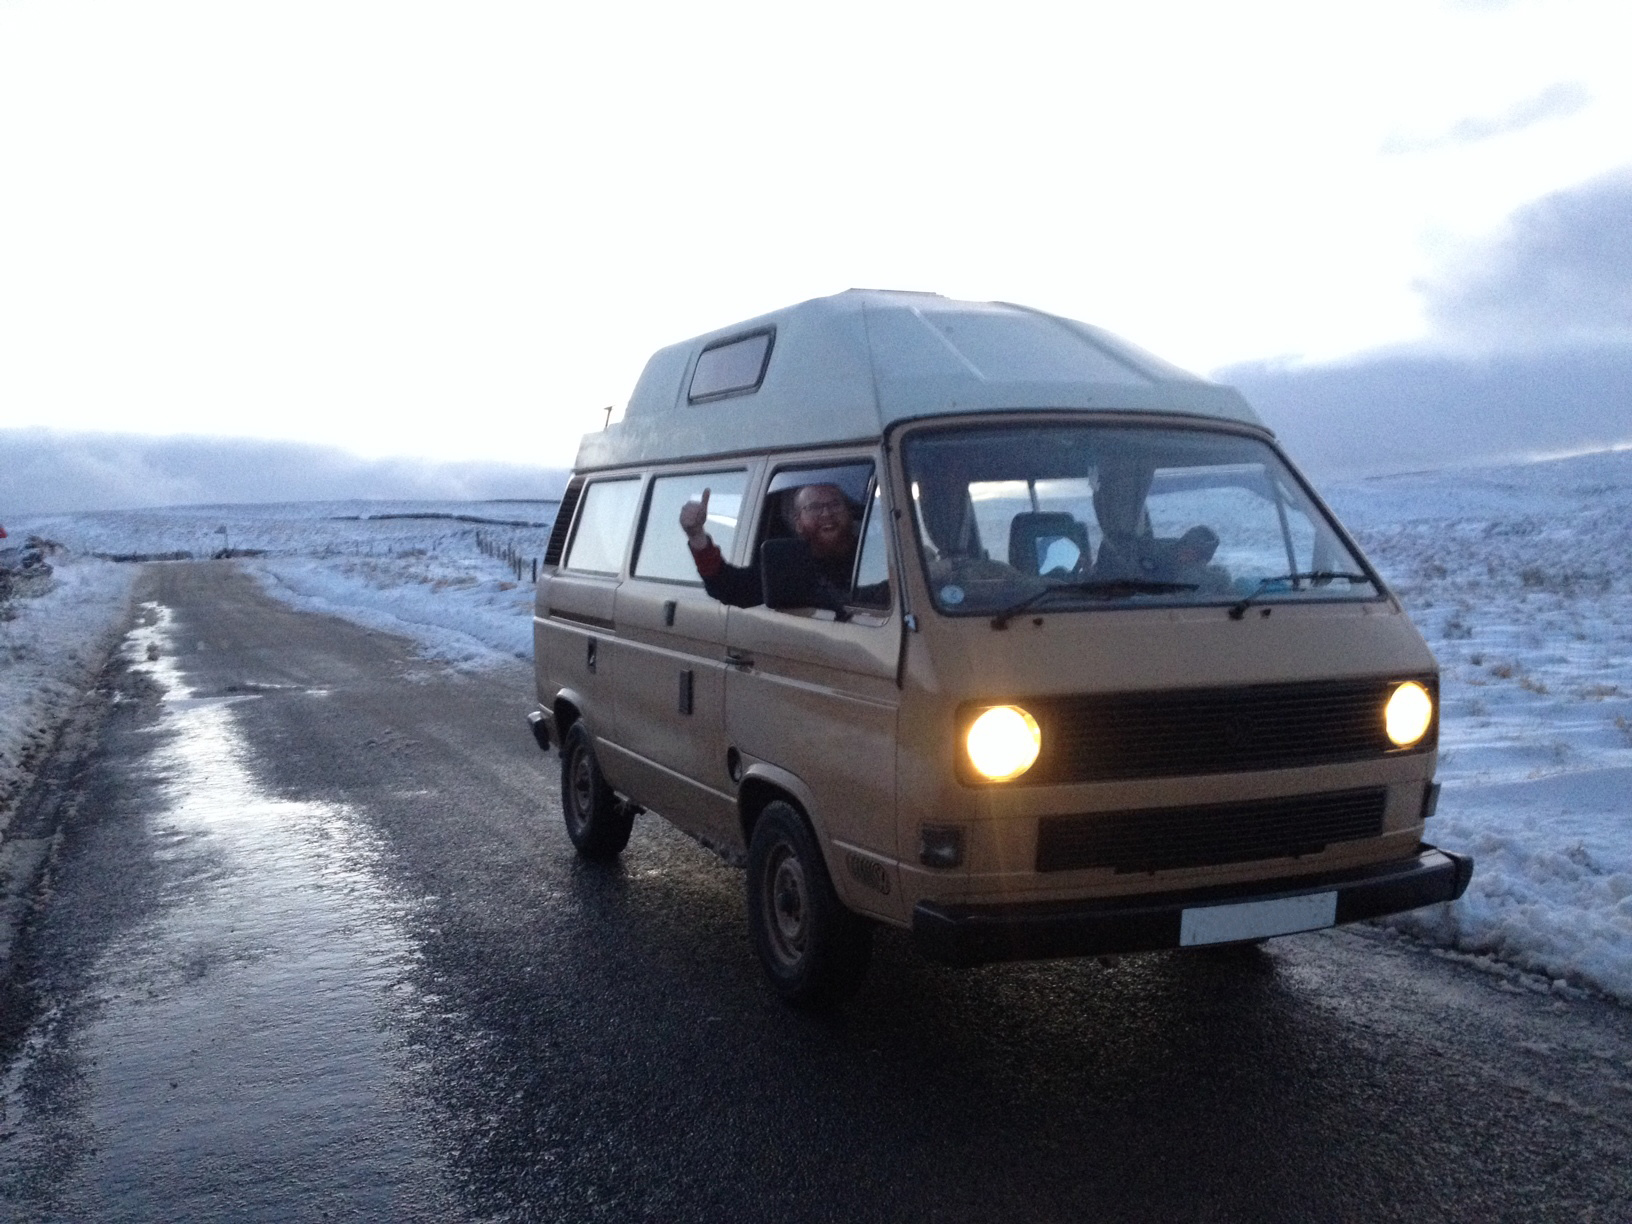 Jamie and the VW camper made it to the top of Fleet Moss!